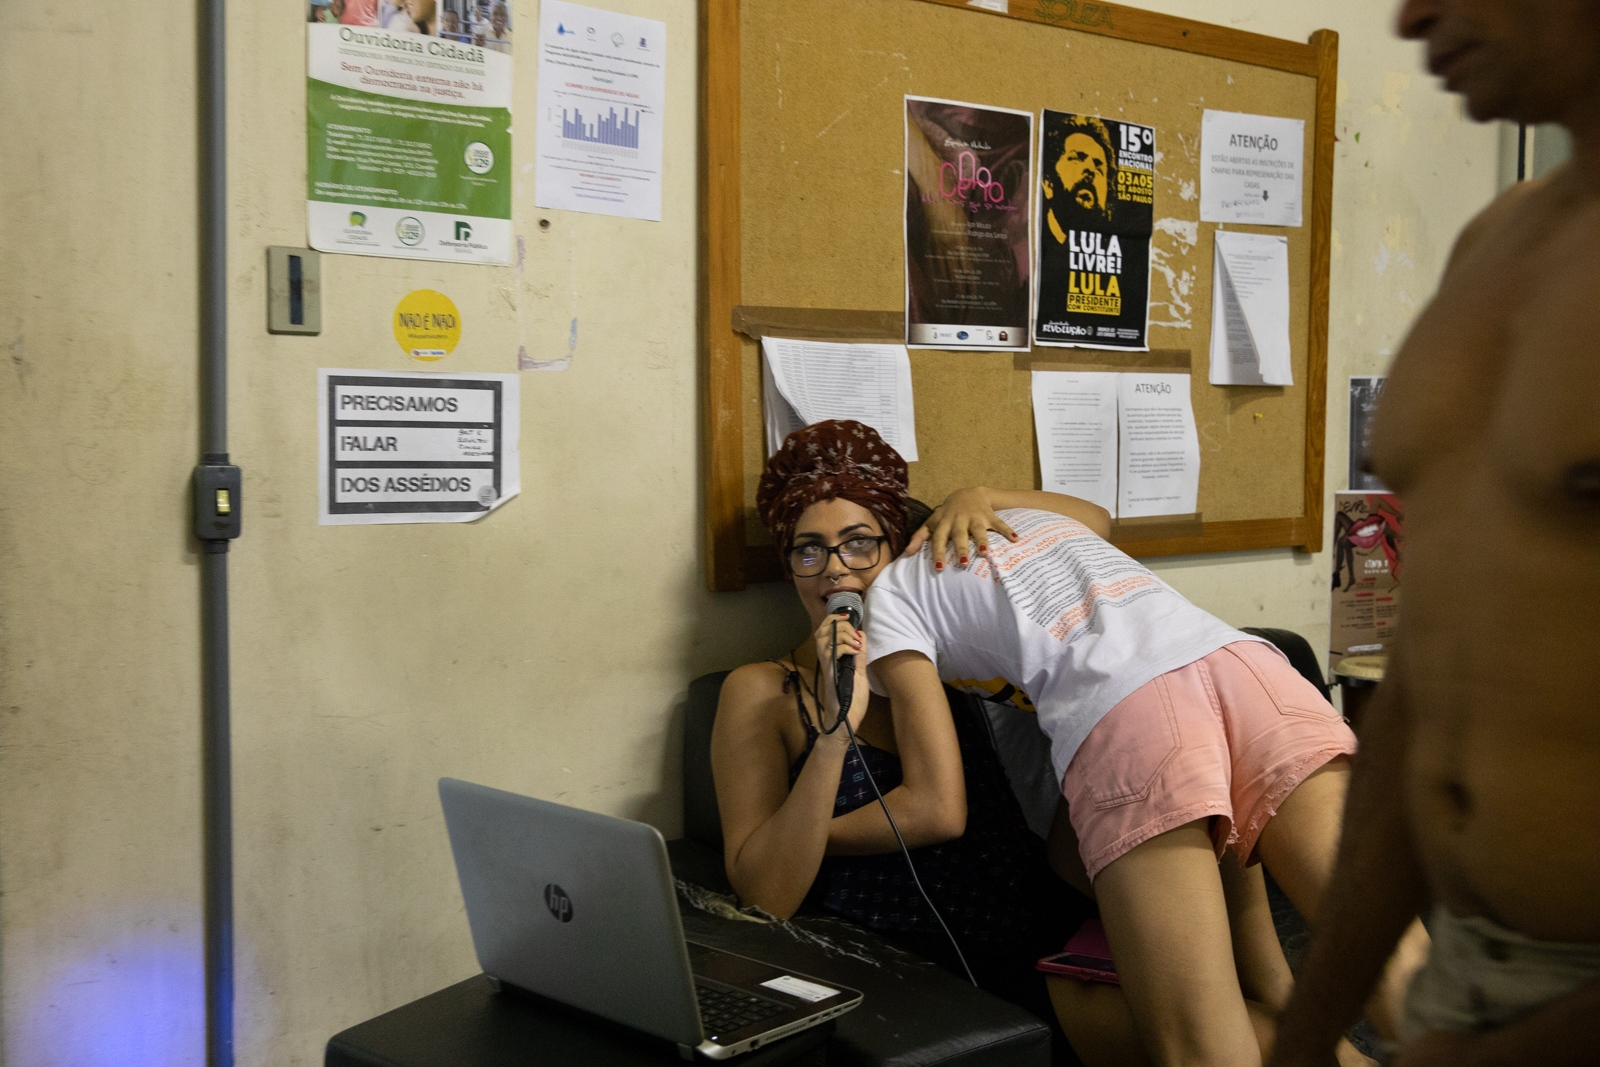 Jenny Muller, 23, holds a friend at the University of Bahia Student's Residence. As a trans woman and student on Arts, Jeanne fights for her gender state and create cultural meetings and events around LGBT mouvement fights. Salvador.